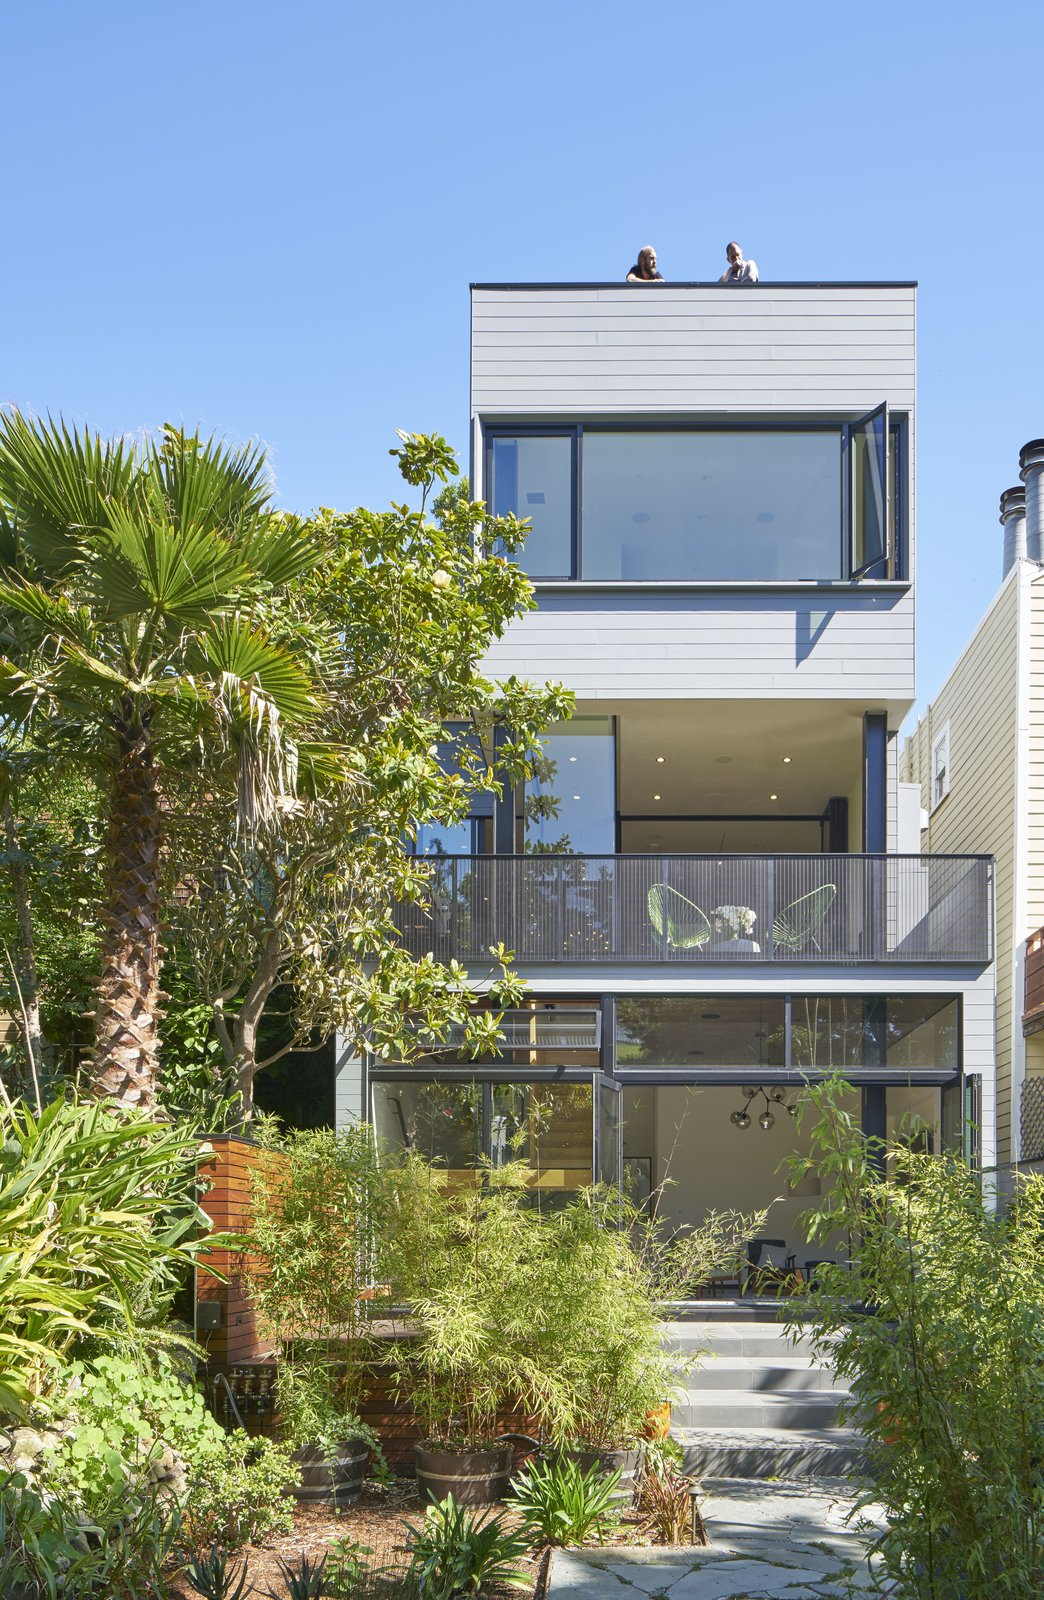 Outdoor, Hardscapes, Walkways, Gardens, Trees, Shrubs, Back Yard, Metal Fences, Wall, Garden, and Wire Fences, Wall 29th Street Residence in San Francisco, California  Photo 8 of 11 in Dwell's Top 10 Design Pros of 2017 from 29th Street Residence